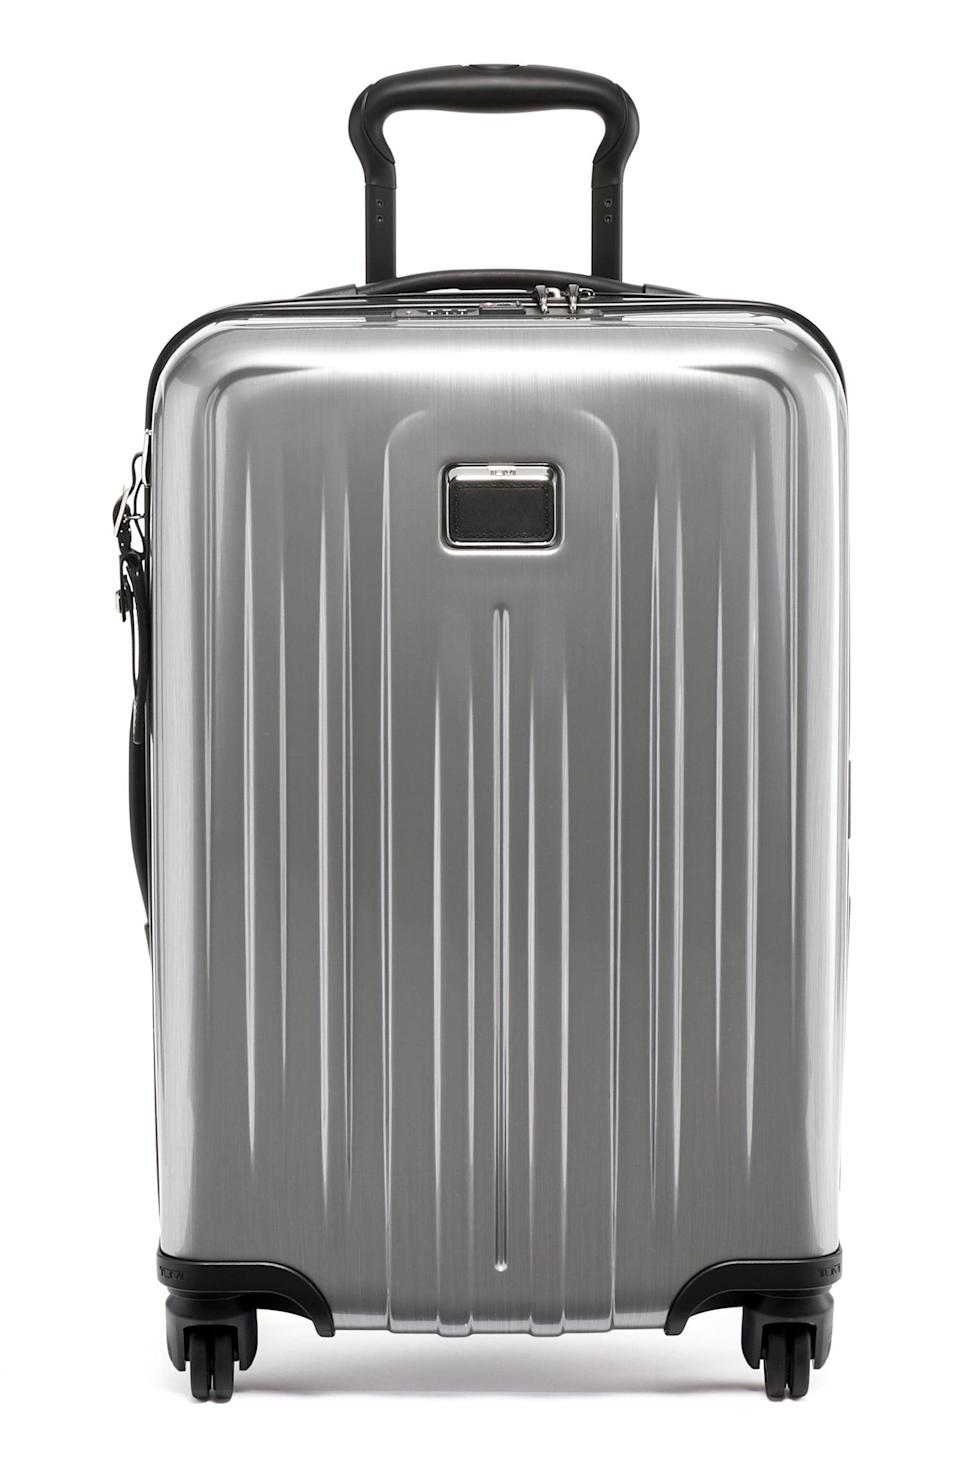 """<p><strong>TUMI</strong></p><p>nordstrom.com</p><p><strong>$349.90</strong></p><p><a href=""""https://go.redirectingat.com?id=74968X1596630&url=https%3A%2F%2Fwww.nordstrom.com%2Fs%2Ftumi-v4-international-22-inch-expandable-wheeled-carry-on%2F5594915&sref=https%3A%2F%2Fwww.veranda.com%2Fluxury-lifestyle%2Fg33484341%2Fnordstrom-anniversary-sale-2020%2F"""" rel=""""nofollow noopener"""" target=""""_blank"""" data-ylk=""""slk:Discover"""" class=""""link rapid-noclick-resp"""">Discover</a></p><p>This durable carry-on is the most lightweight option the brand offers, and is perfect maneuverable option for a weekend getaway or business trip. </p>"""